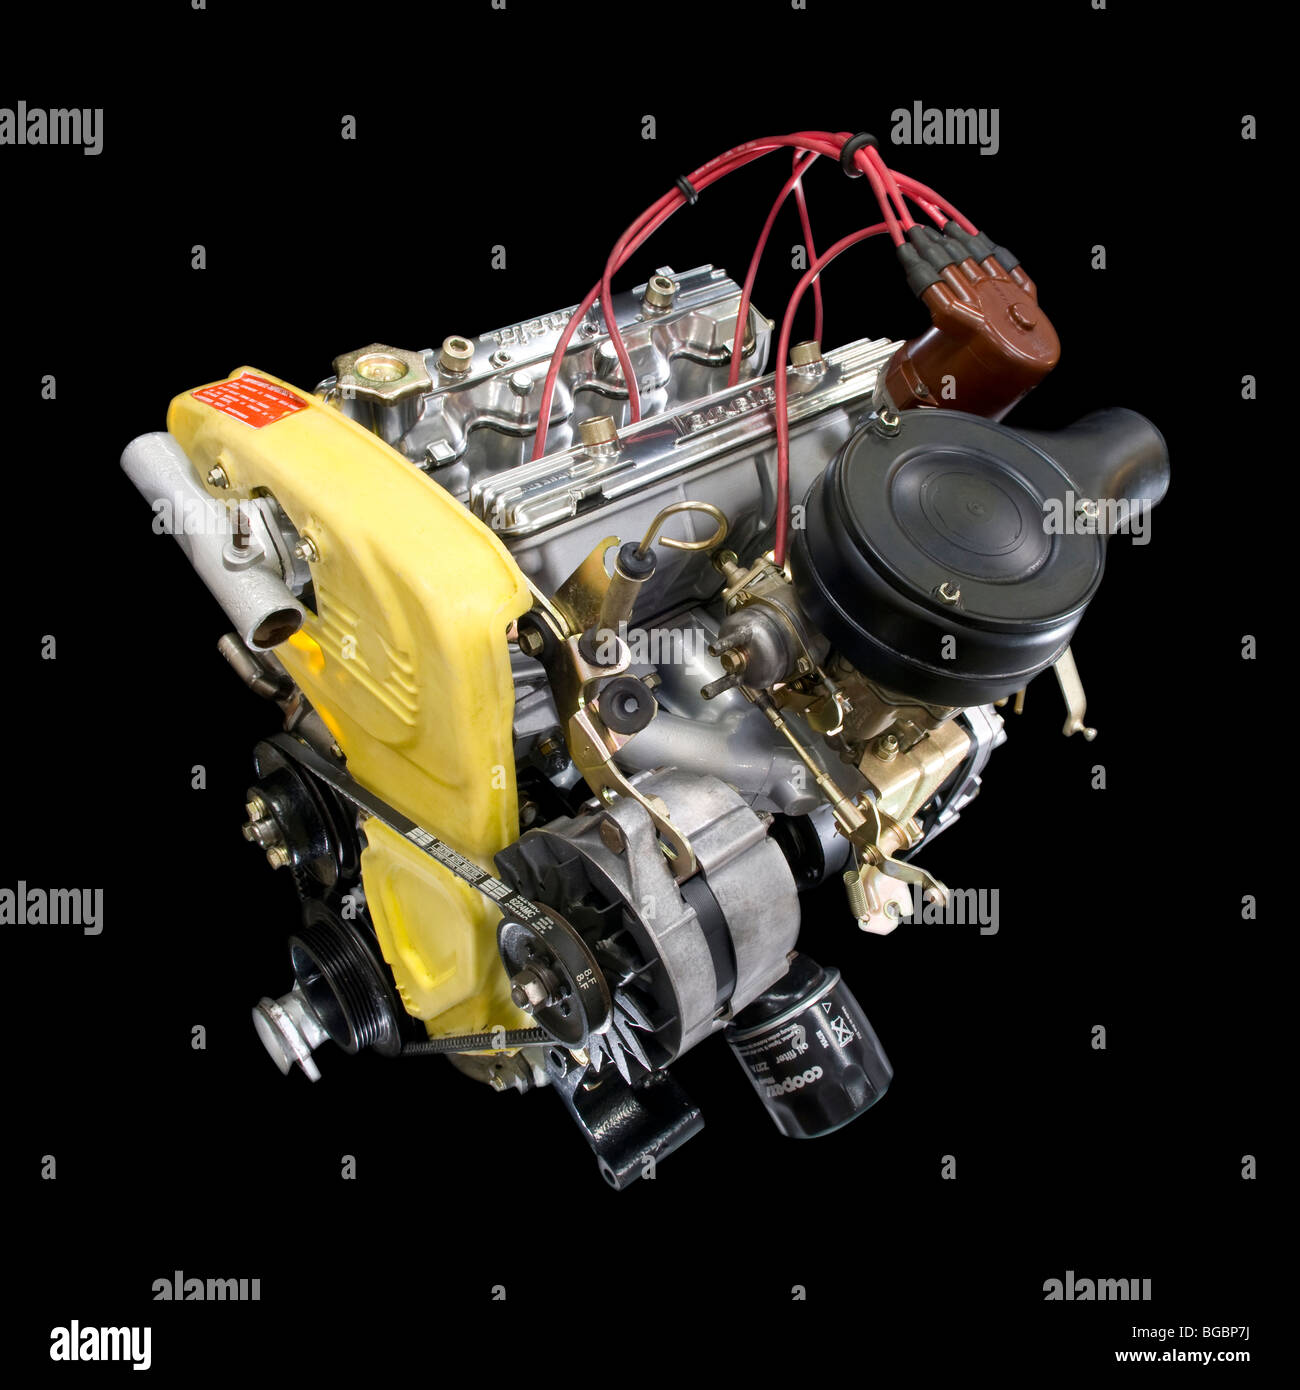 Lancia Monte Carlo Engine Cut Out - Stock Image